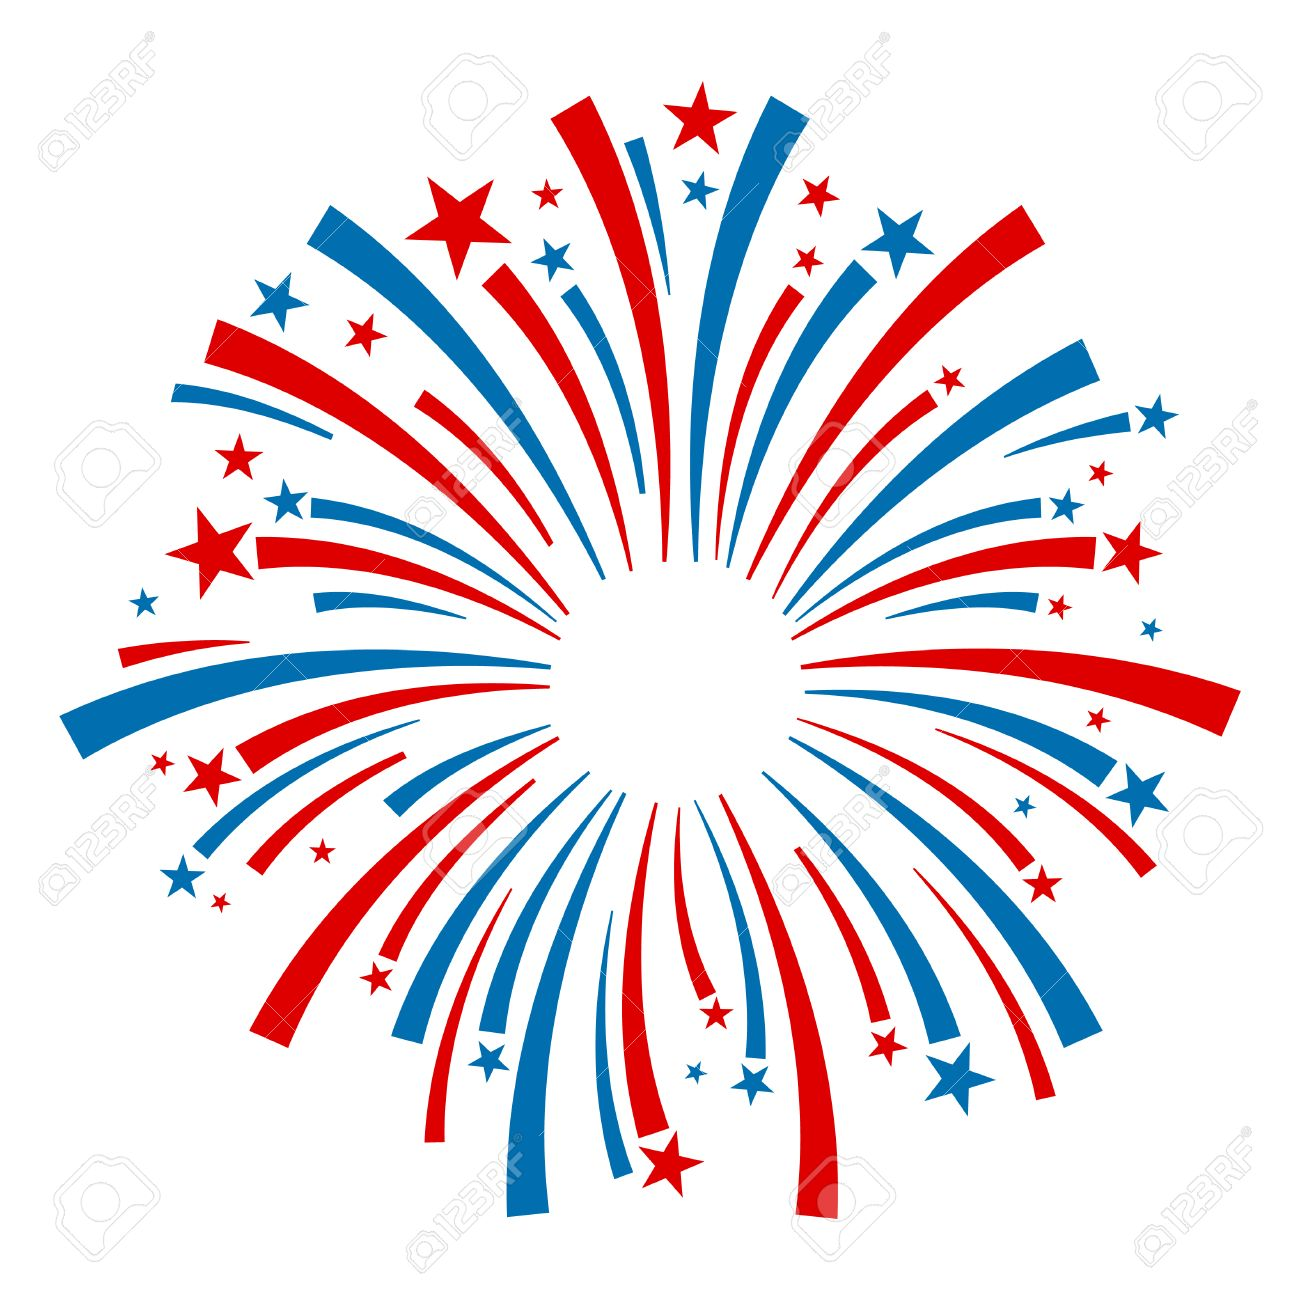 hight resolution of fireworks vector icon